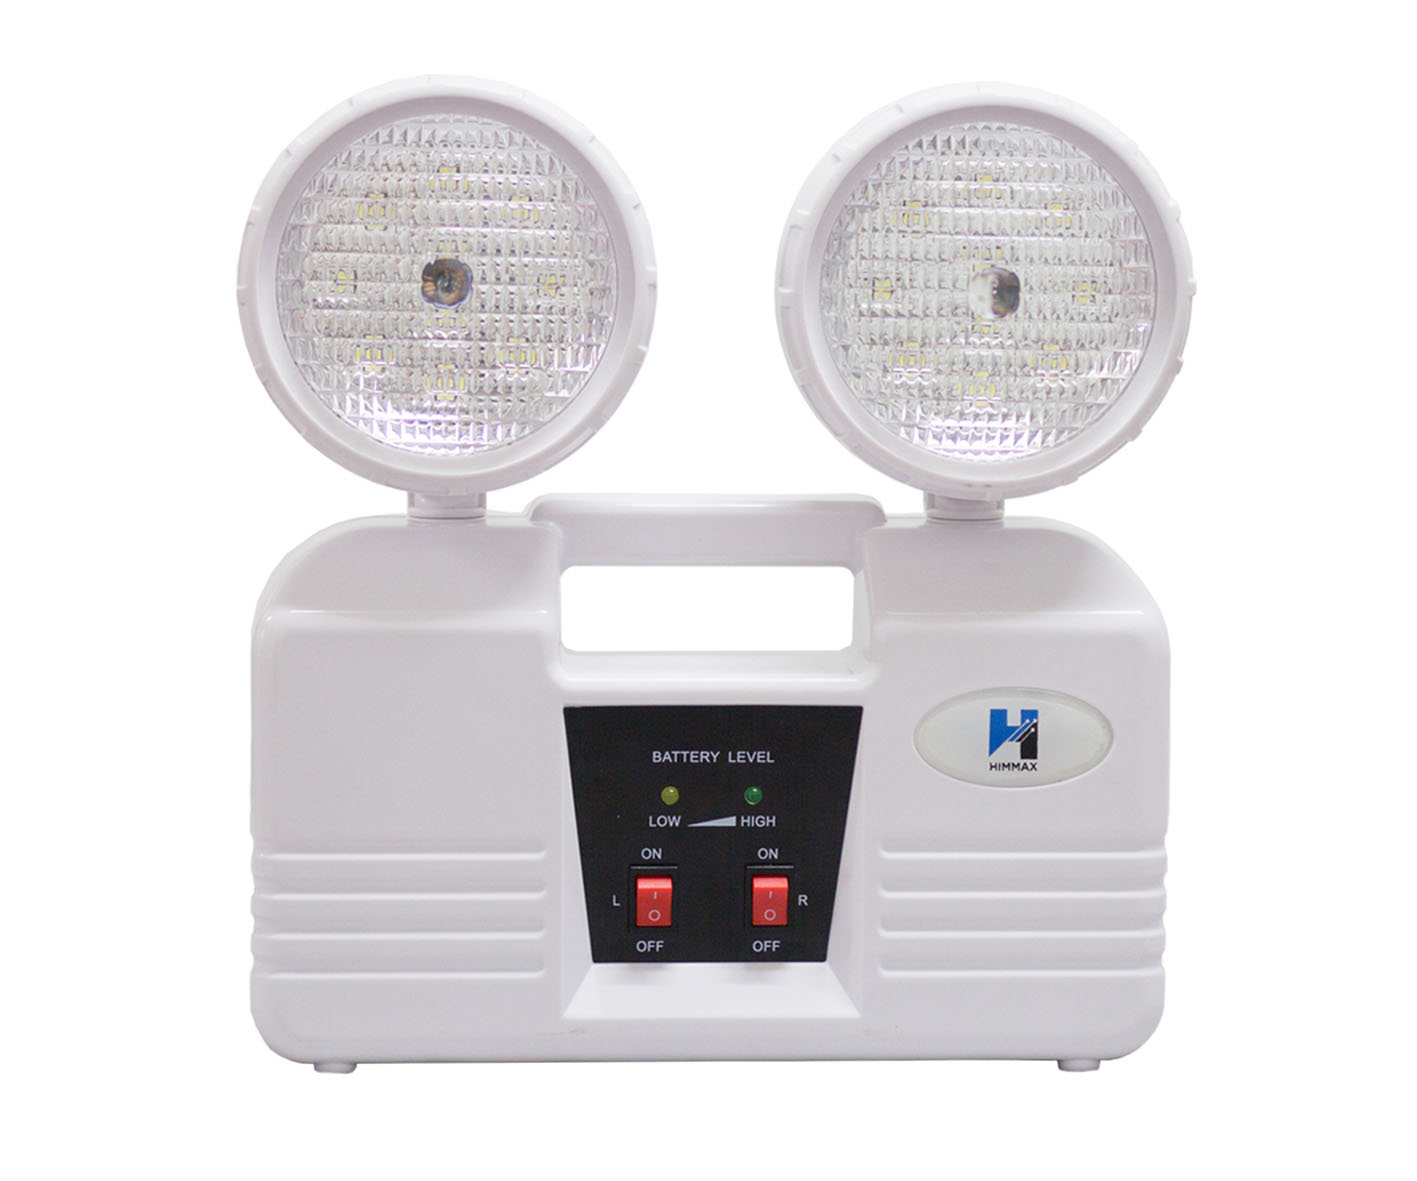 Cr 7013 Led Emergency Light Himmax Electronics Corporation